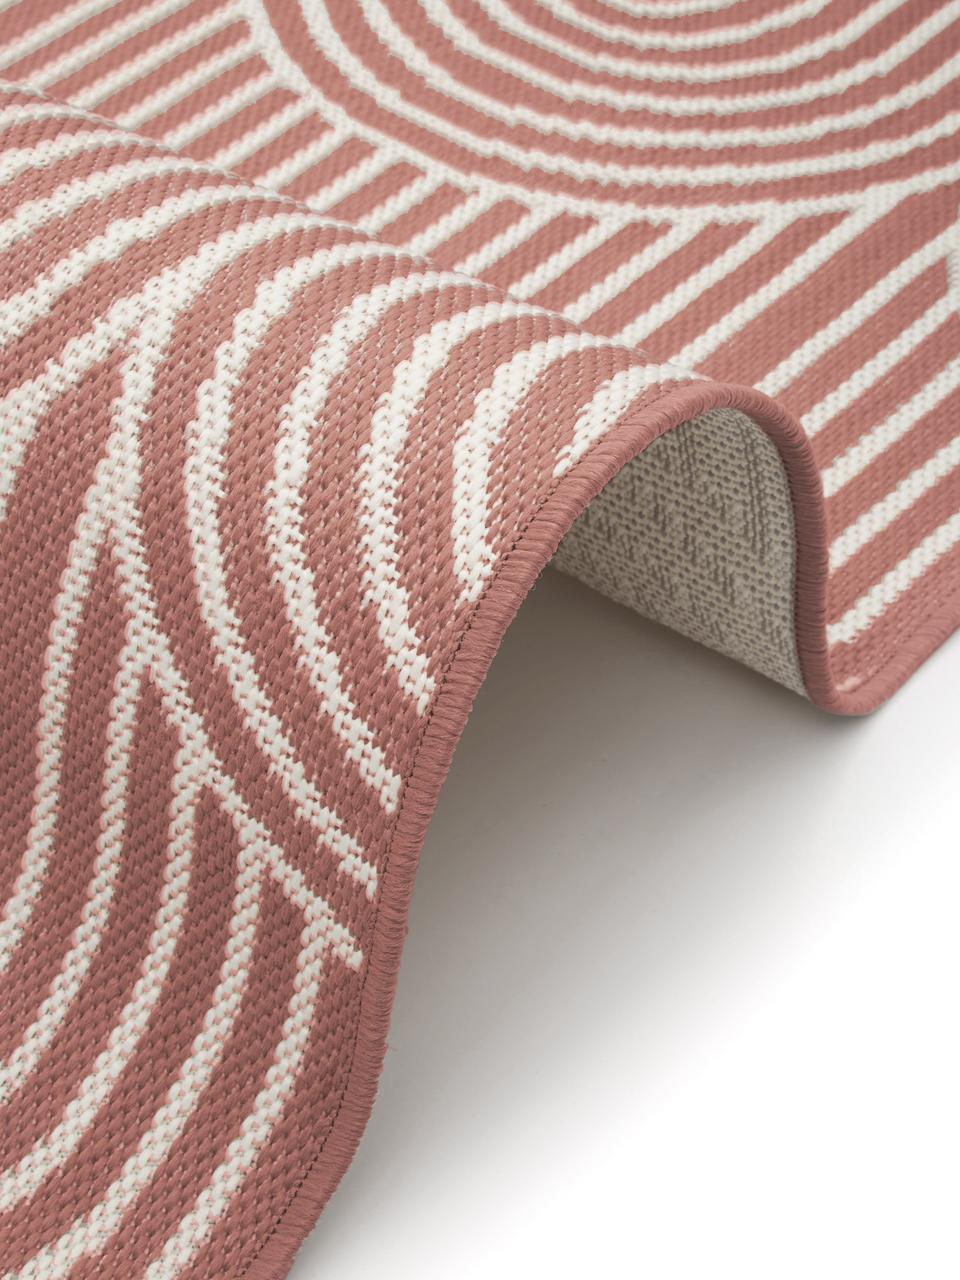 In- & outdoor loper Arches in koraalrood/crèmewit, 86% polypropyleen, 14% polyester, Rood, wit, 80 x 250 cm